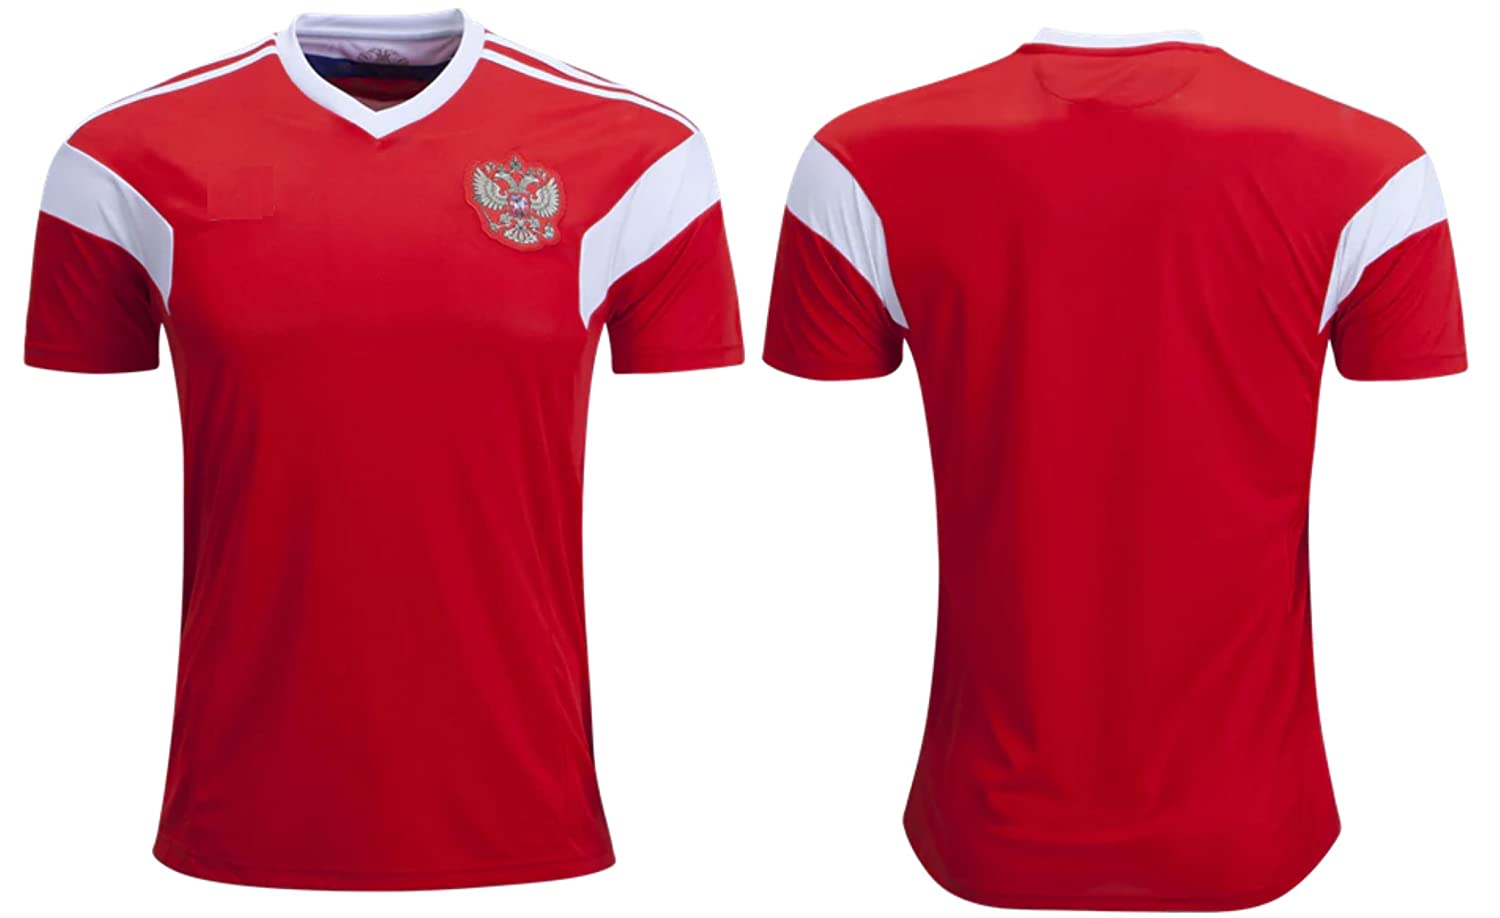 8dc3ad8e Amazon.com : Russia Men's Soccer Jersey Home Short Sleeve Adult Sizes :  Sports & Outdoors